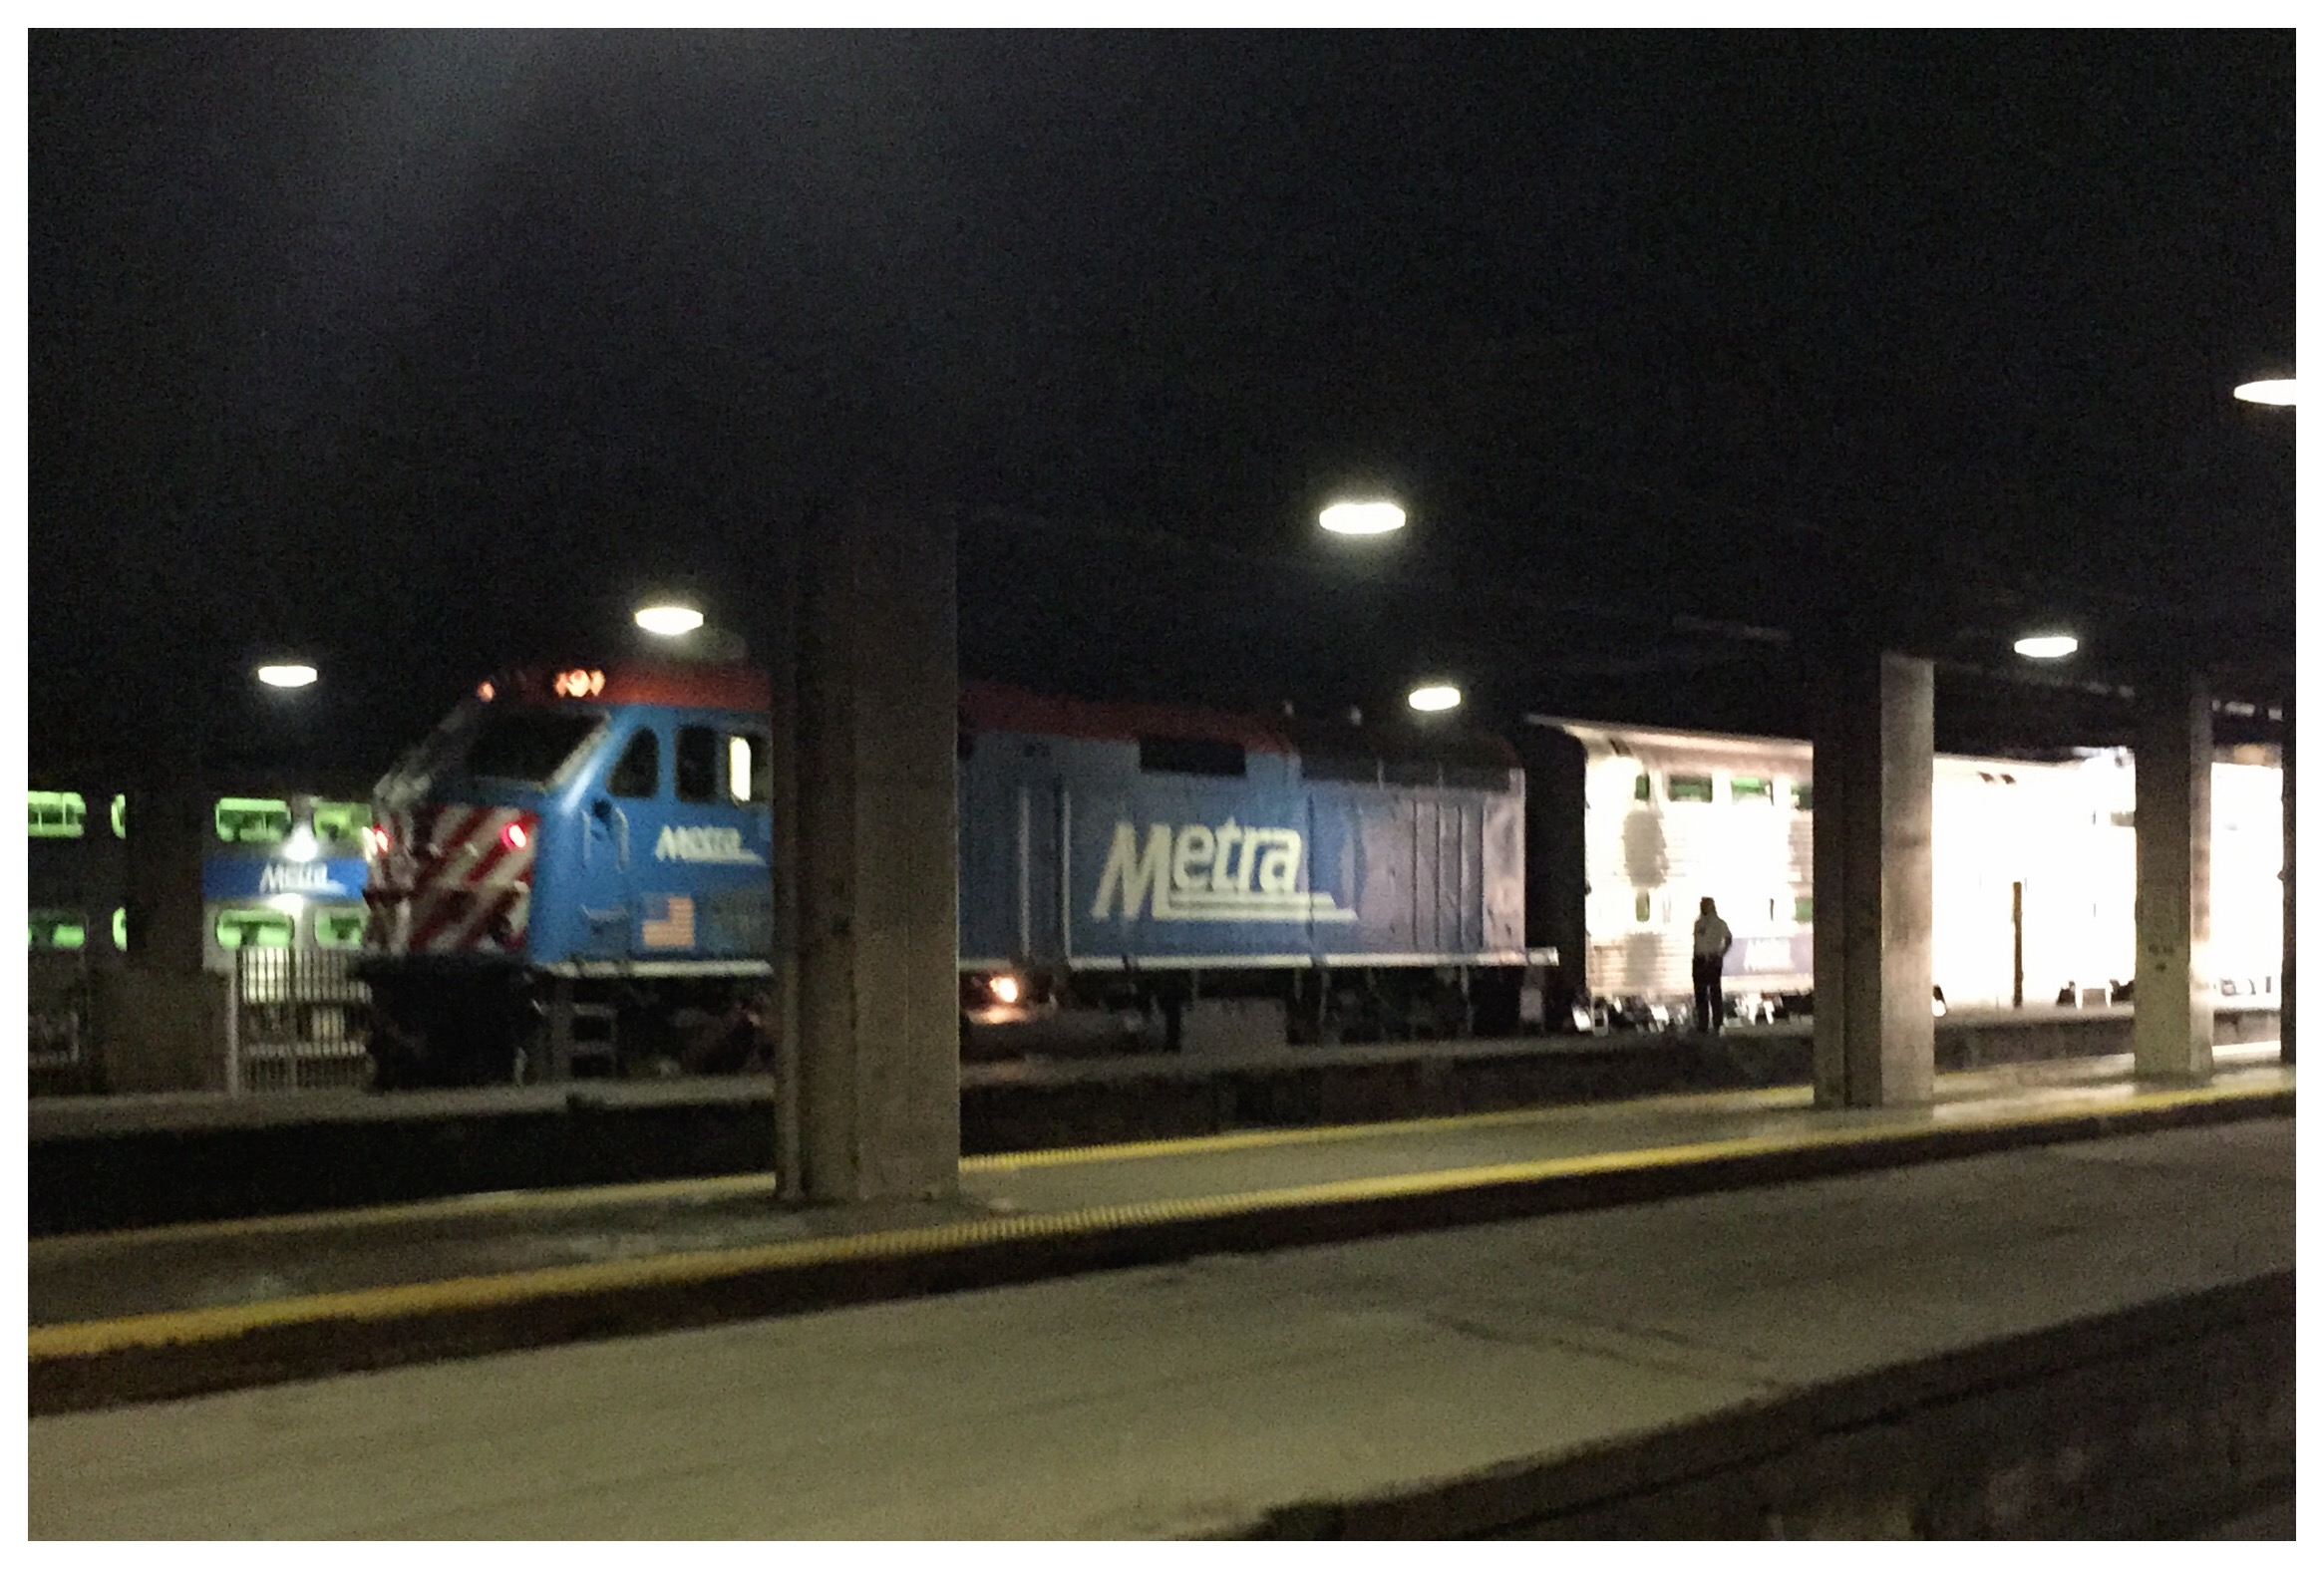 metra commuter train at chicago union station